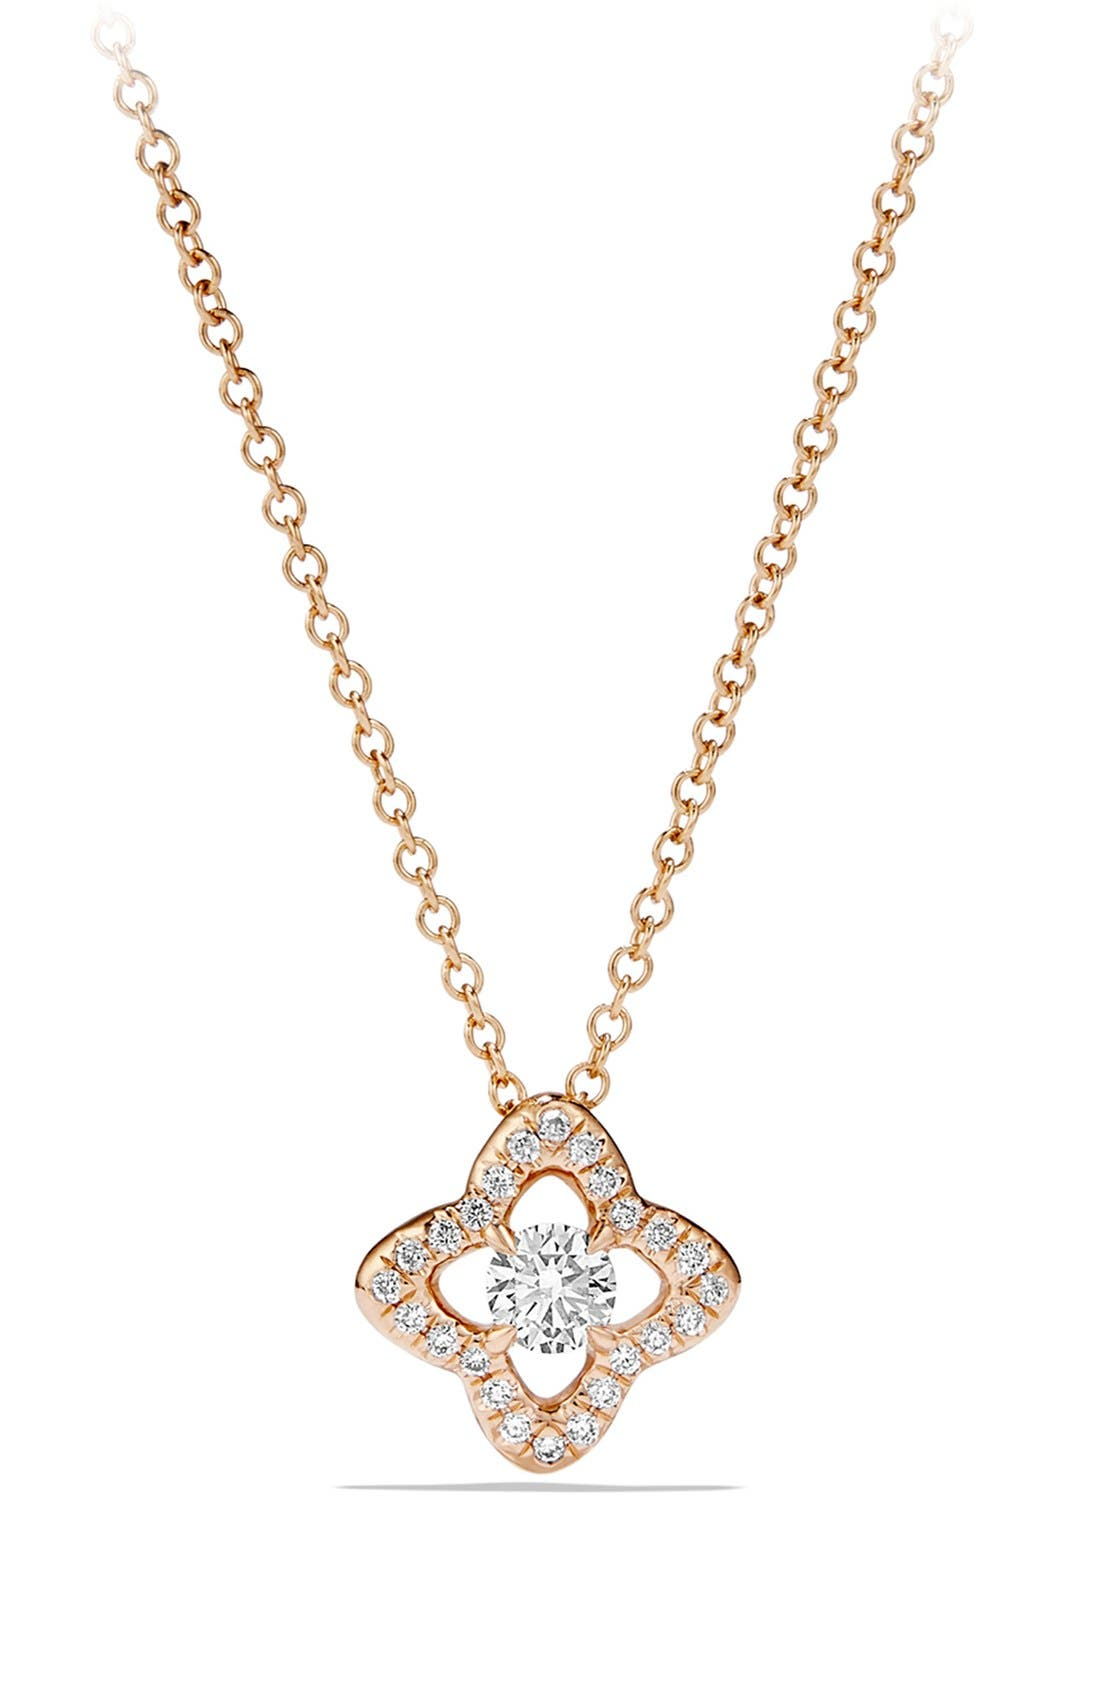 'Venetian Quatrefoil' Necklace with Diamonds in Gold,                             Main thumbnail 1, color,                             ROSE GOLD